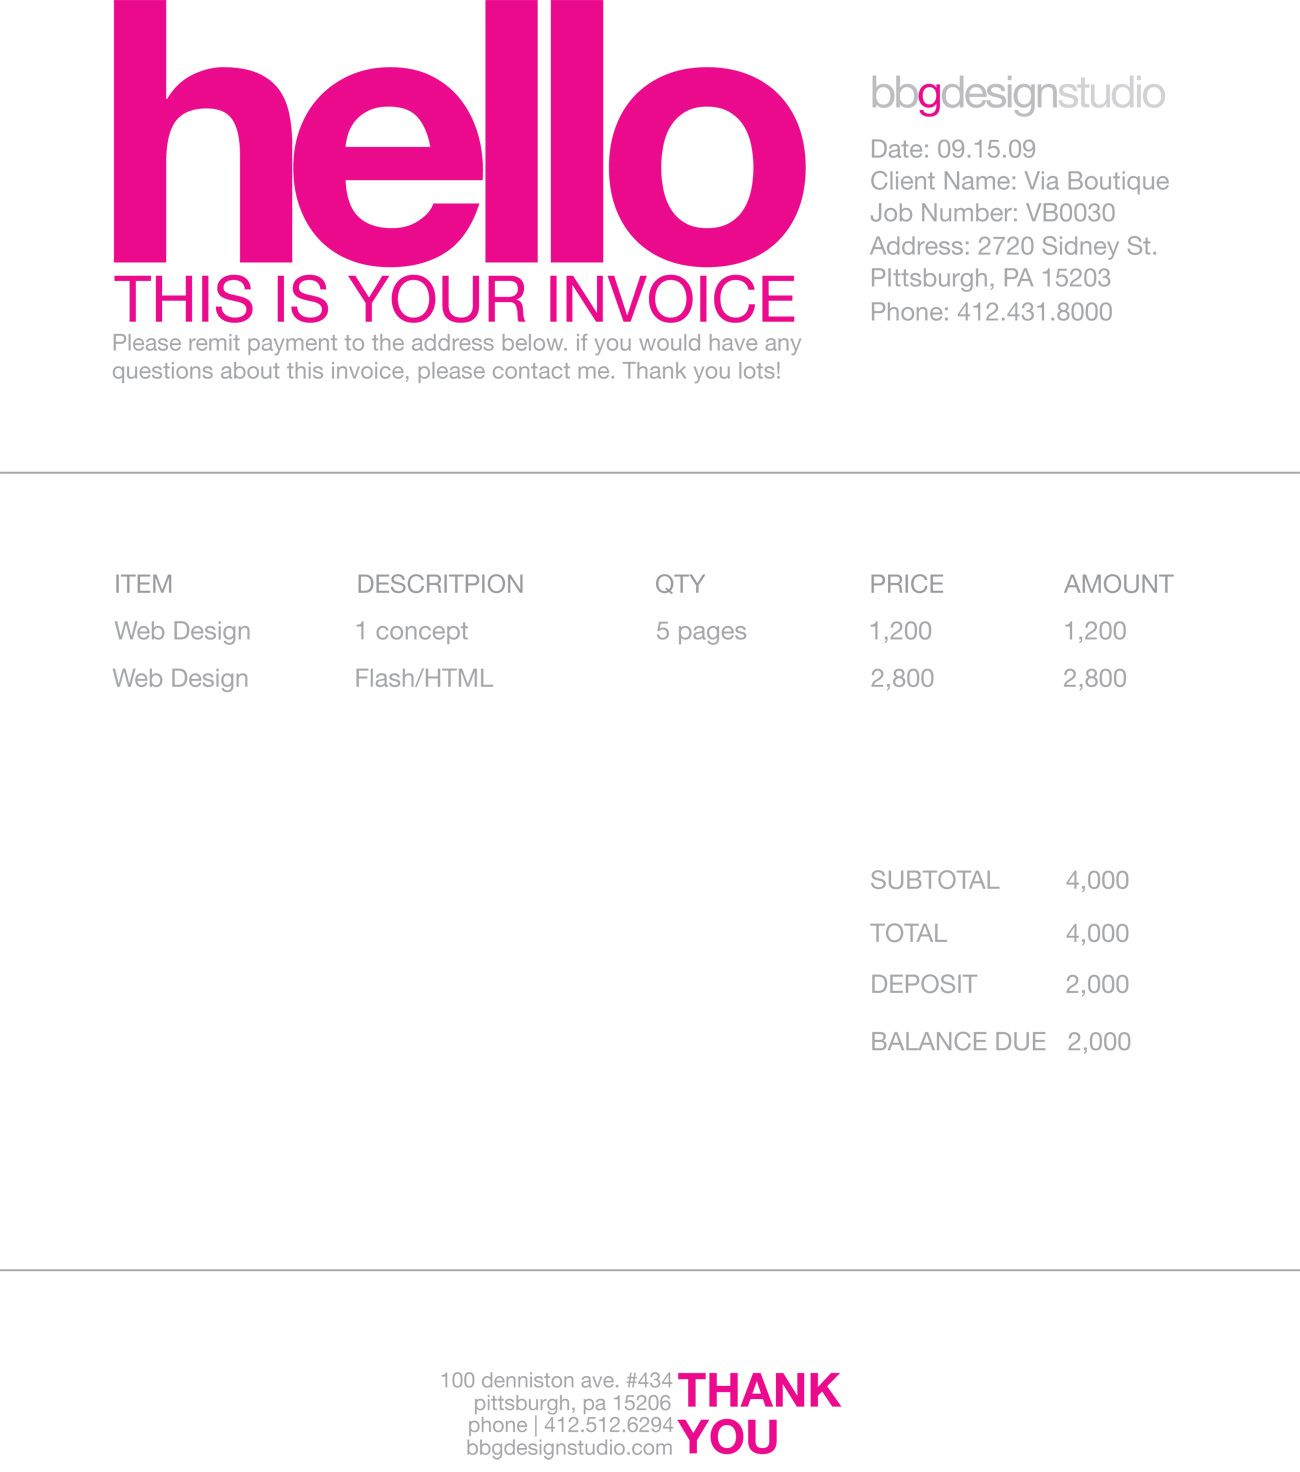 Floobydustus  Pretty  Images About Invoice Design On Pinterest With Likable Proforma Invoice Doc Besides Cash Sale Invoice Template Furthermore Sage Email Invoices With Archaic Xero Invoice Templates Download Also Contoh Proforma Invoice In Addition Samples Of An Invoice And Invoice Template For Services Provided As Well As Landscaping Invoice Software Additionally How To Raise An Invoice From Pinterestcom With Floobydustus  Likable  Images About Invoice Design On Pinterest With Archaic Proforma Invoice Doc Besides Cash Sale Invoice Template Furthermore Sage Email Invoices And Pretty Xero Invoice Templates Download Also Contoh Proforma Invoice In Addition Samples Of An Invoice From Pinterestcom